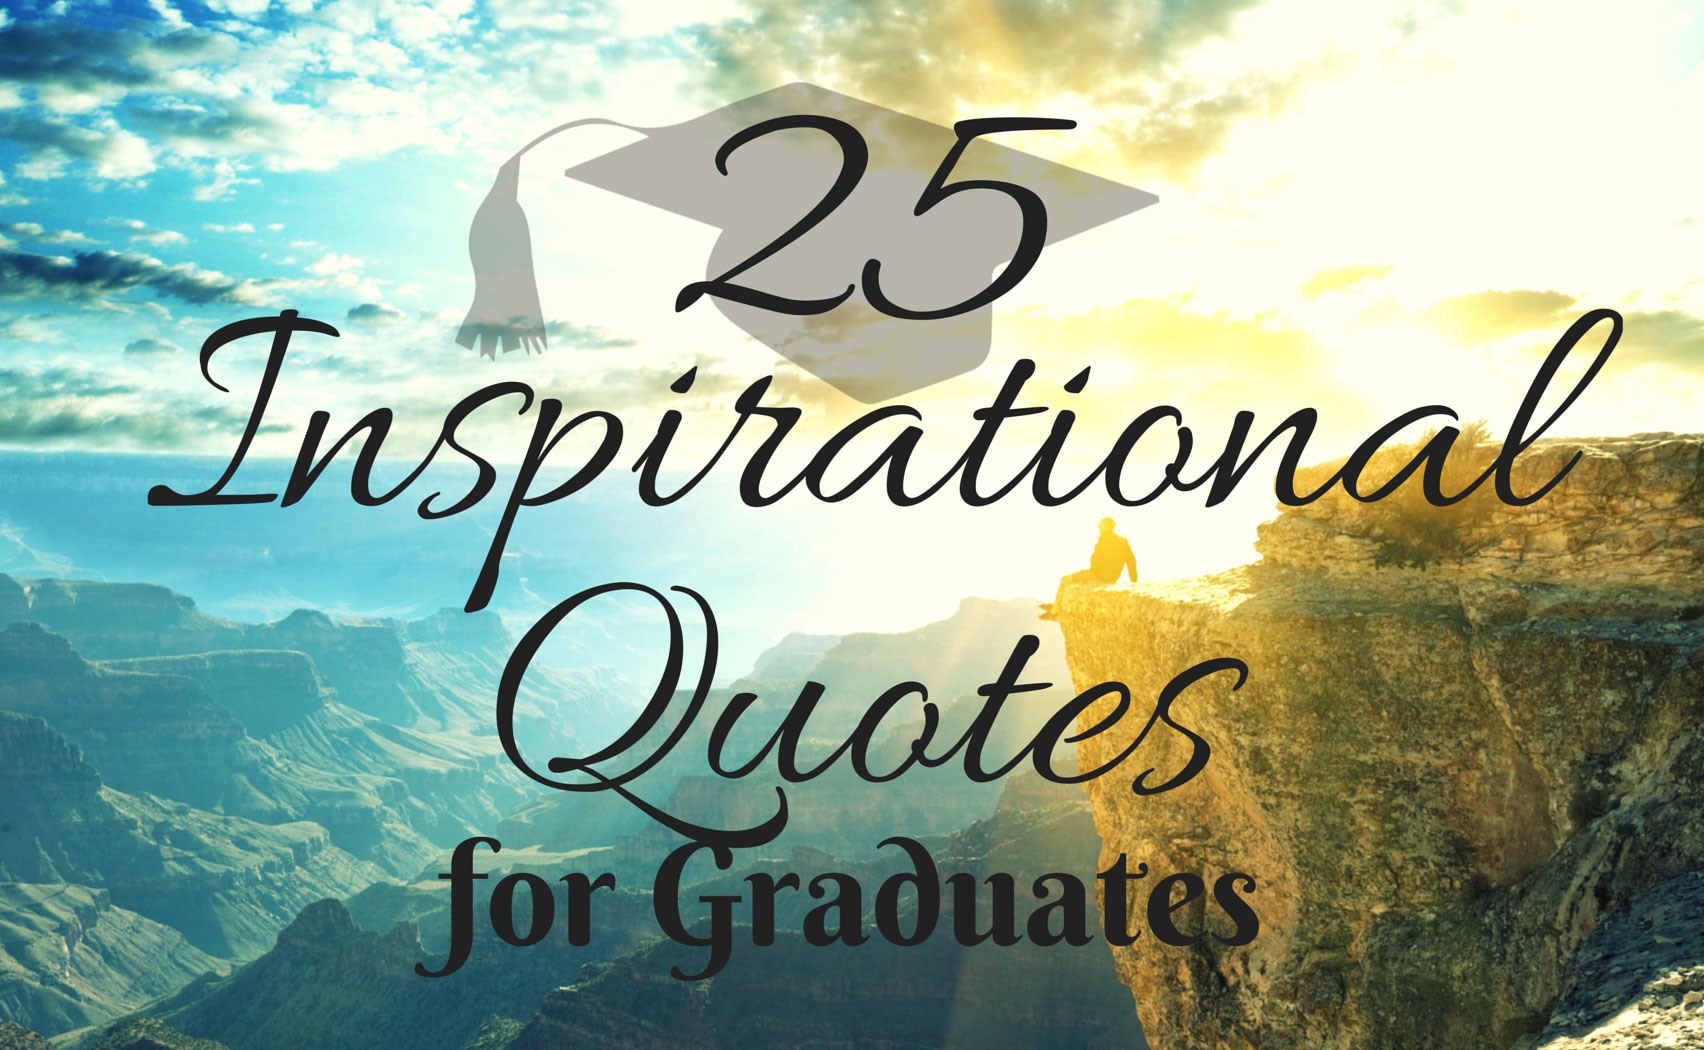 Graduation Quotes: Graduation Quotes For Elementary Students. QuotesGram